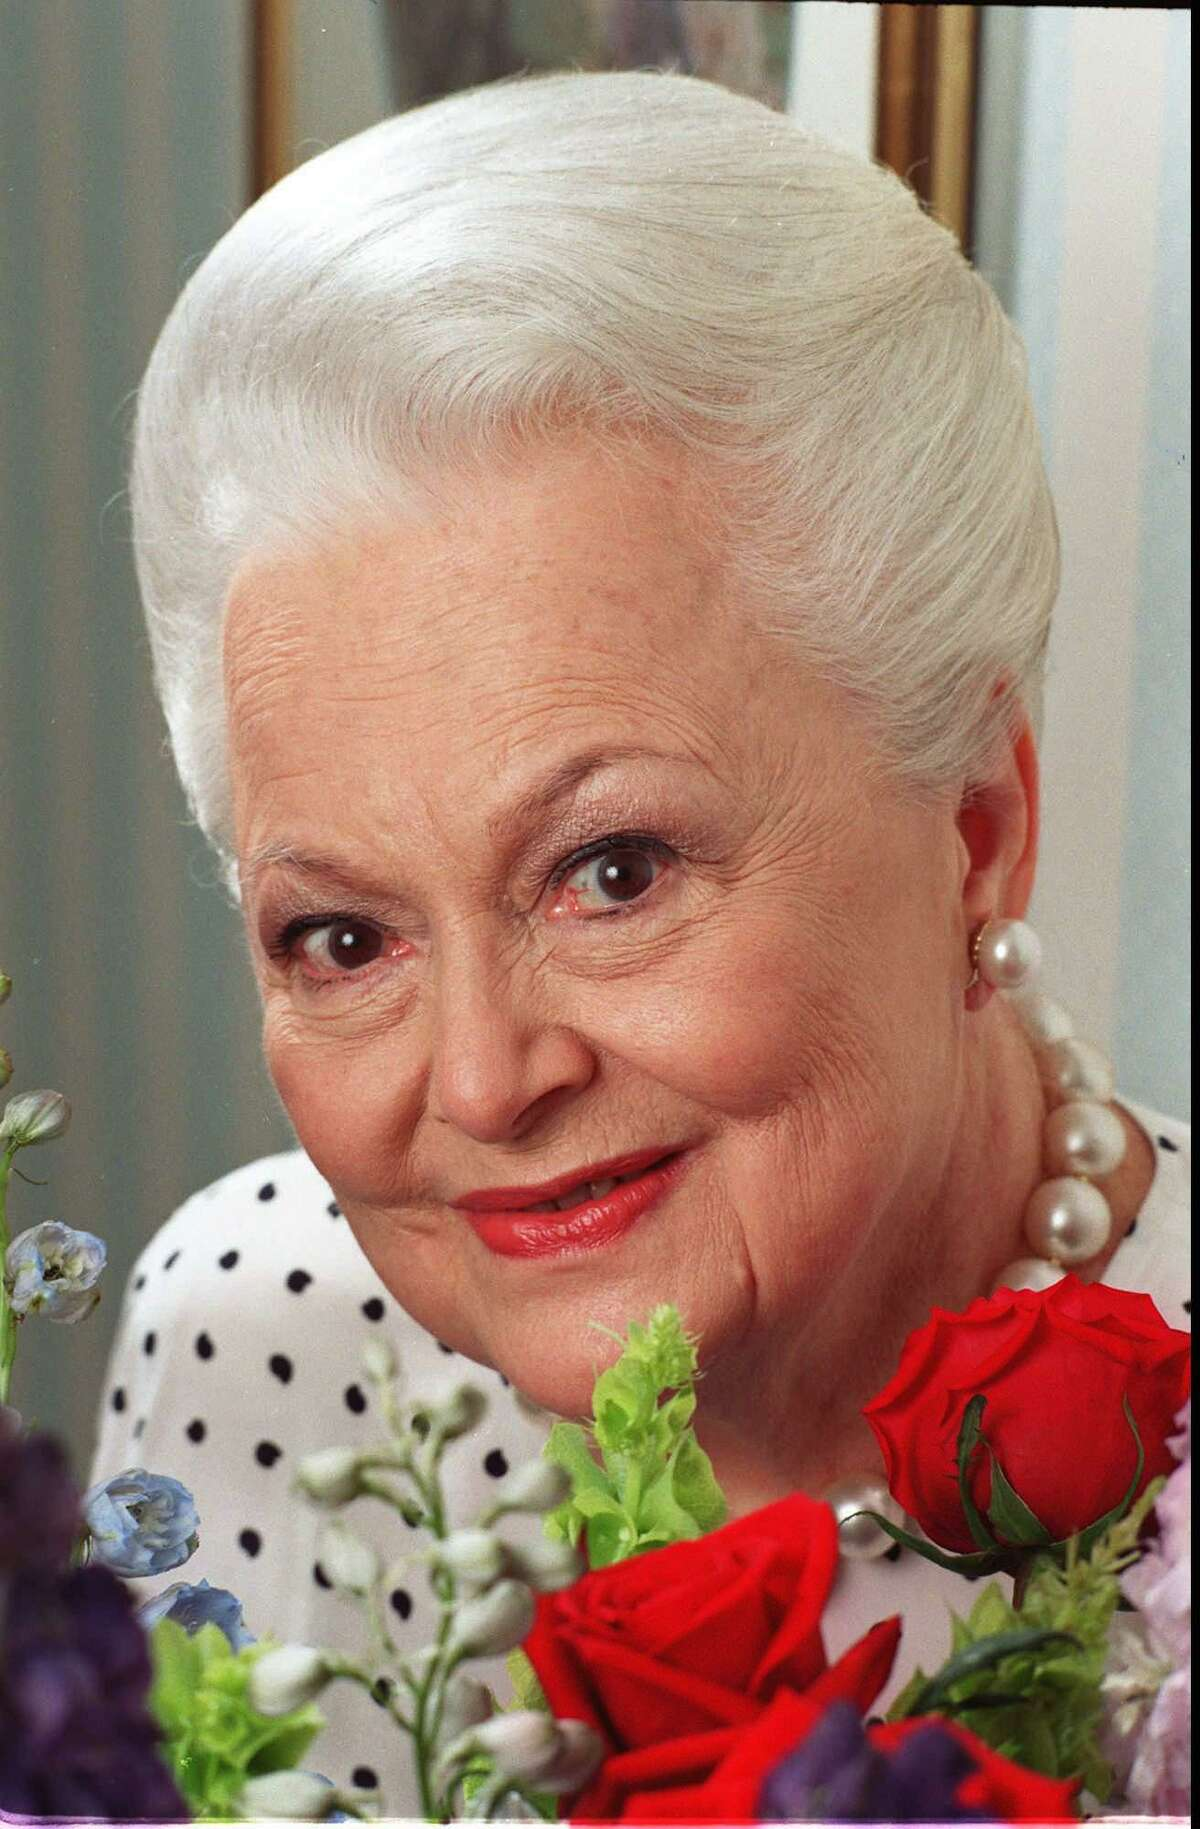 Actress Olivia de Havilland died on July 25 at age 104. She is best known for her performance as Melanie Wilkes in the film,